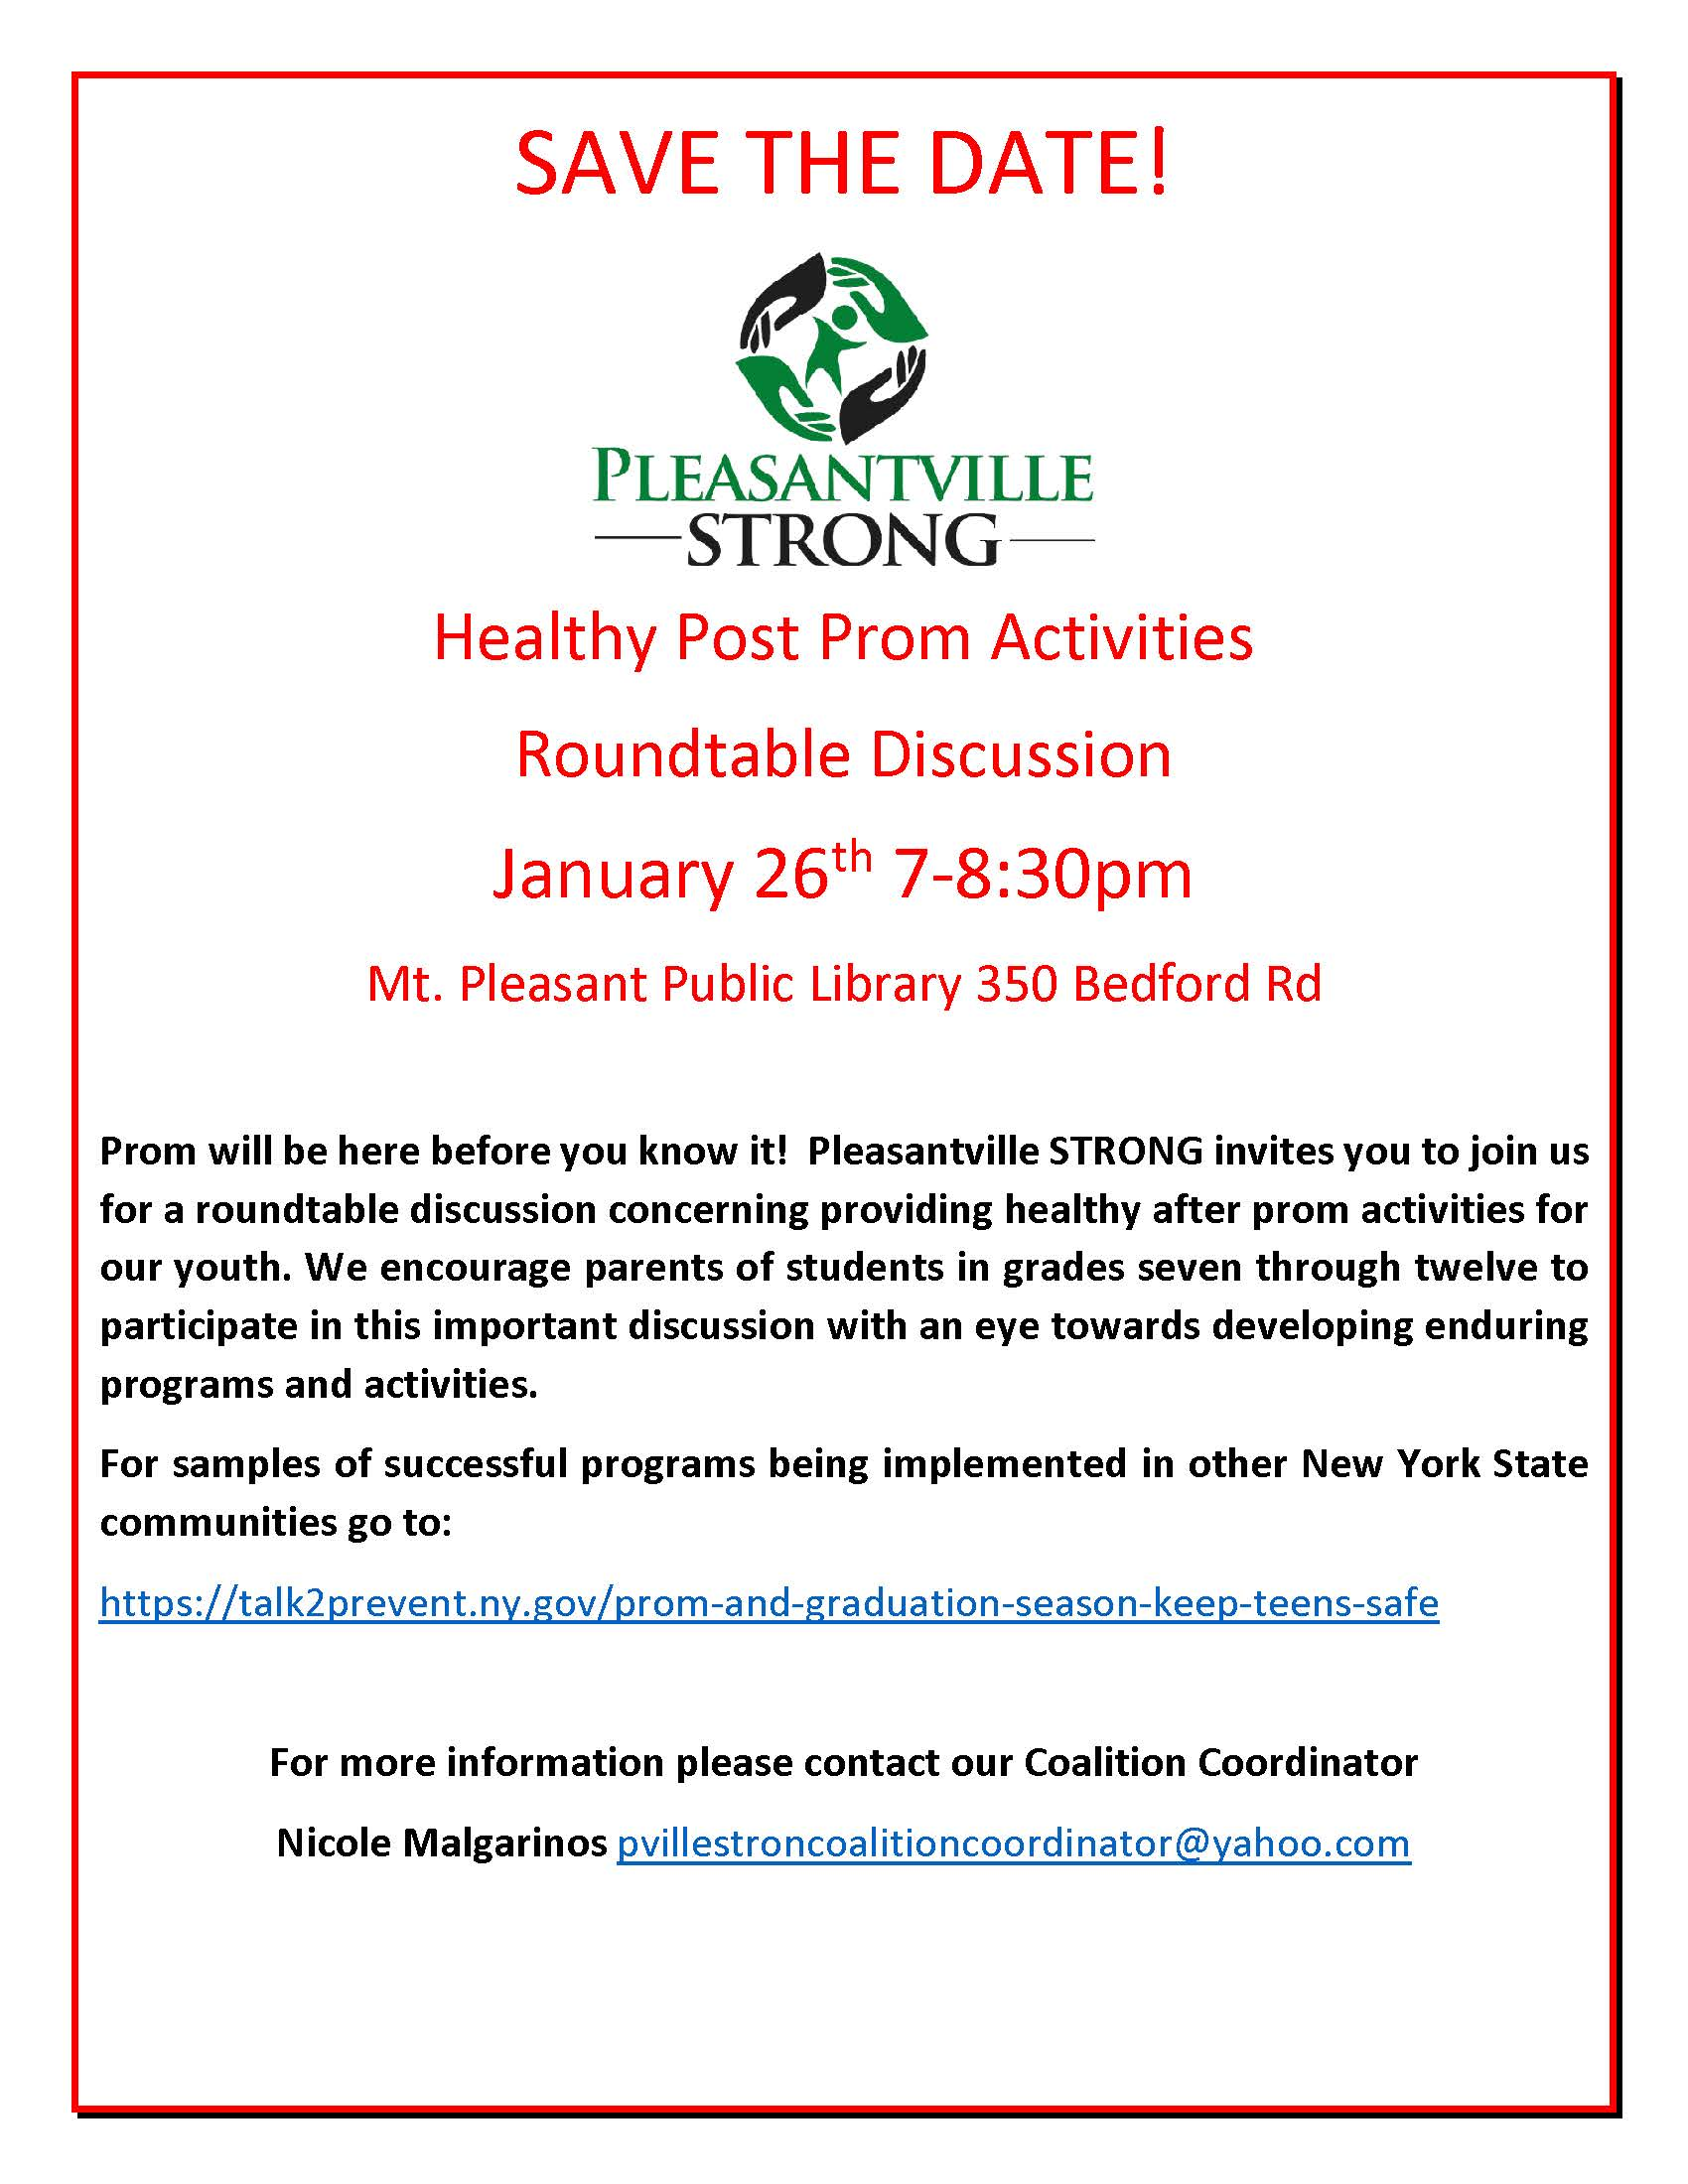 Pleasantville strong we encourage parents of students in grades seven through twelve to participate in this important discussion with an eye towards developing enduring programs stopboris Choice Image